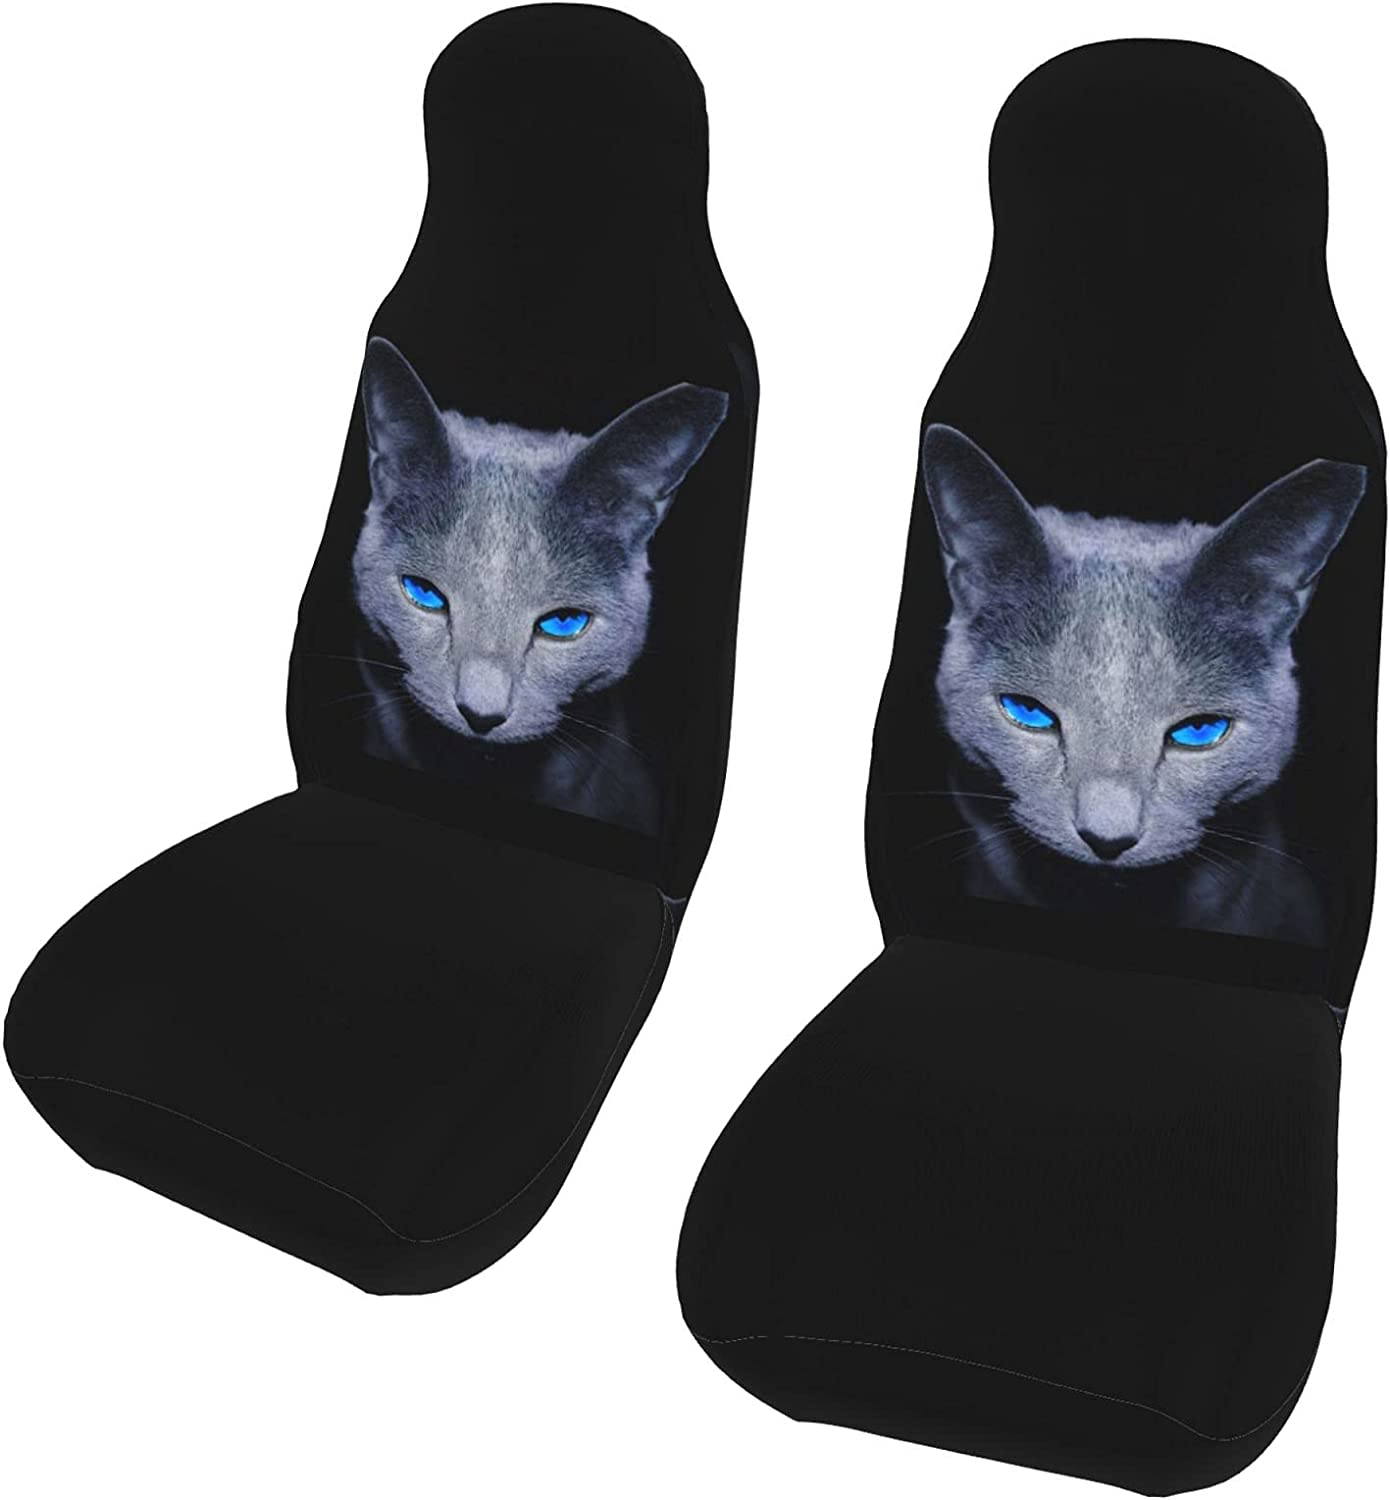 PictetW Animal Cold Blue Cat Sapphire Seat Car Eyes Covers Cheap sale online shopping